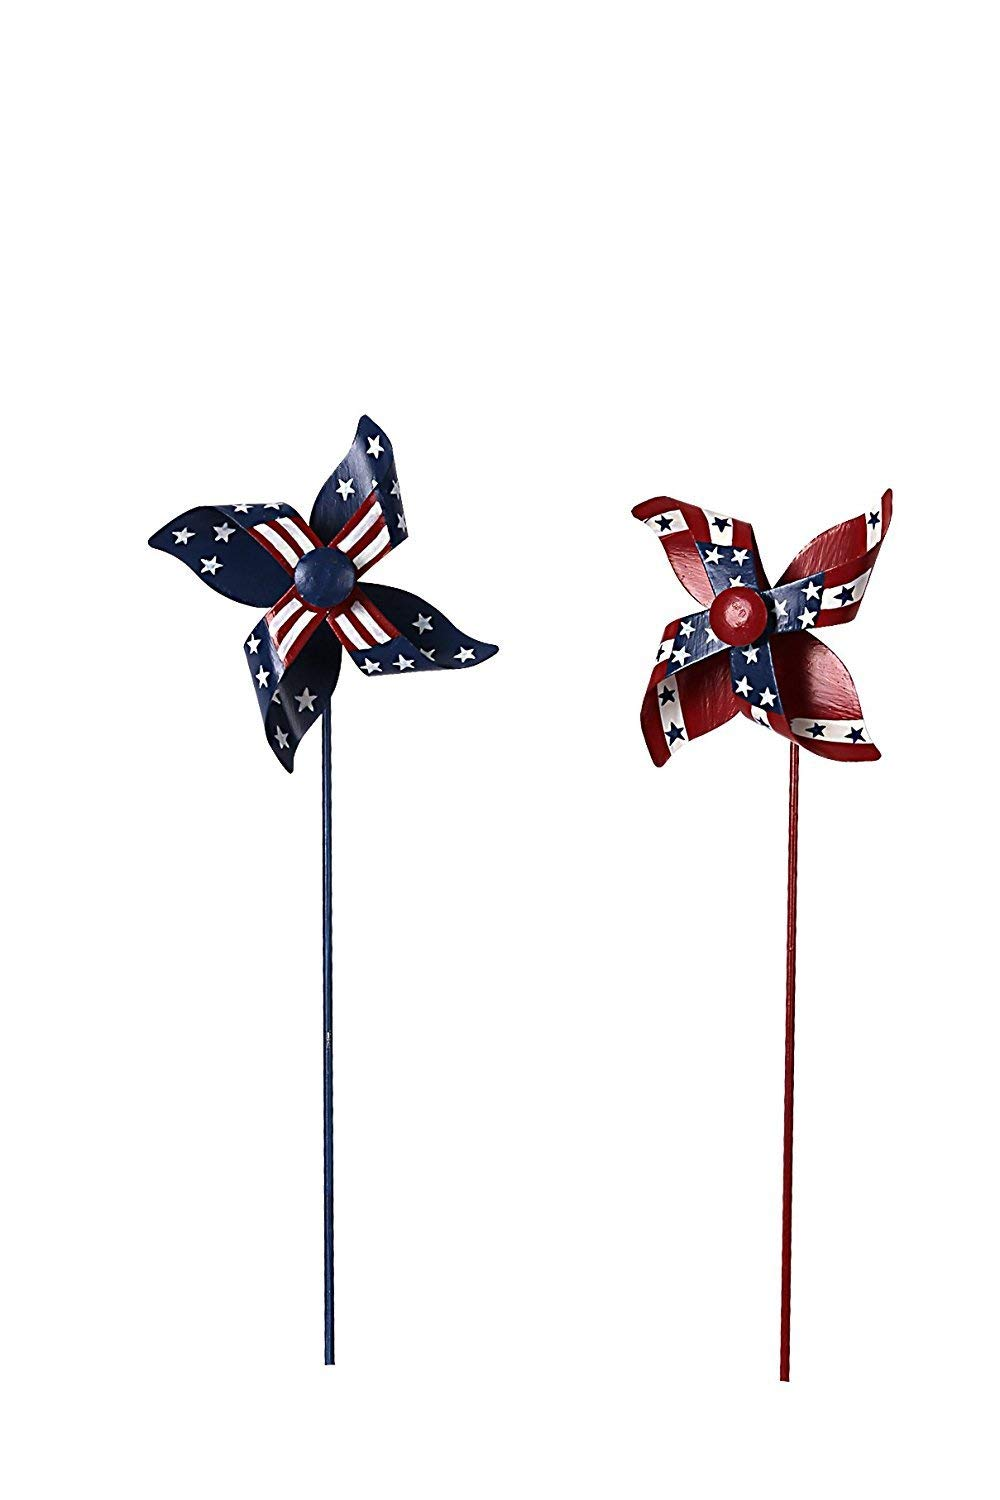 Waroom Home Patriotic Pinwheel Set of 2, American Flag Metal Wind Spinner for 4th of July Decoration, Stars and Stripes, Red White and Blue (S)